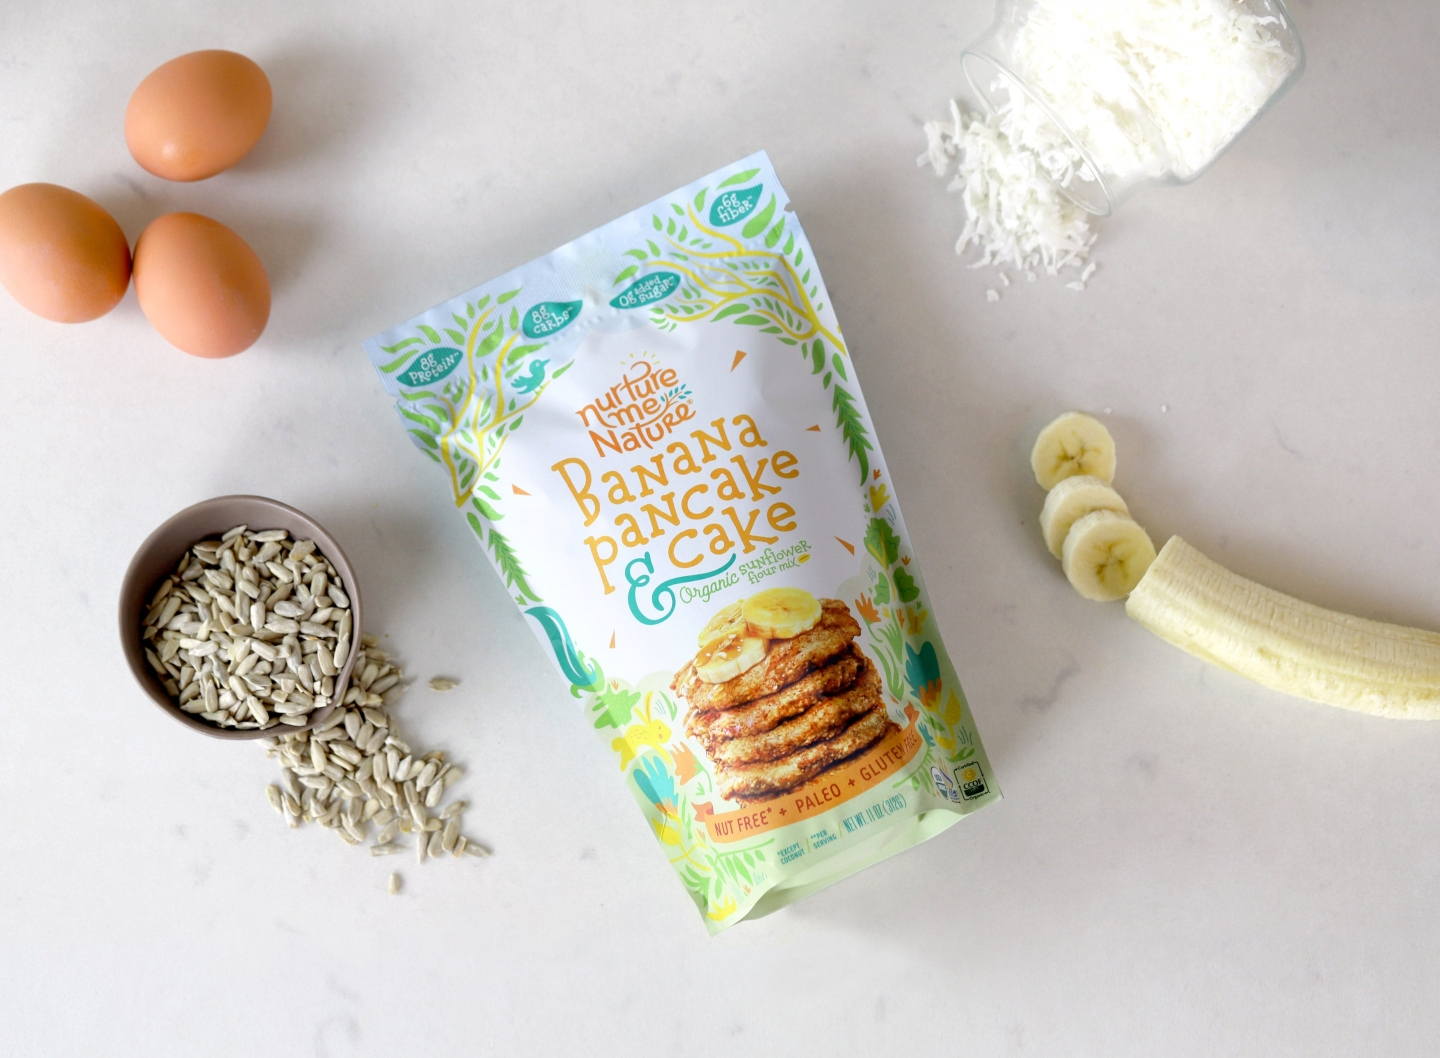 Banana Pancake packaging with healthy ingredients in kitchen